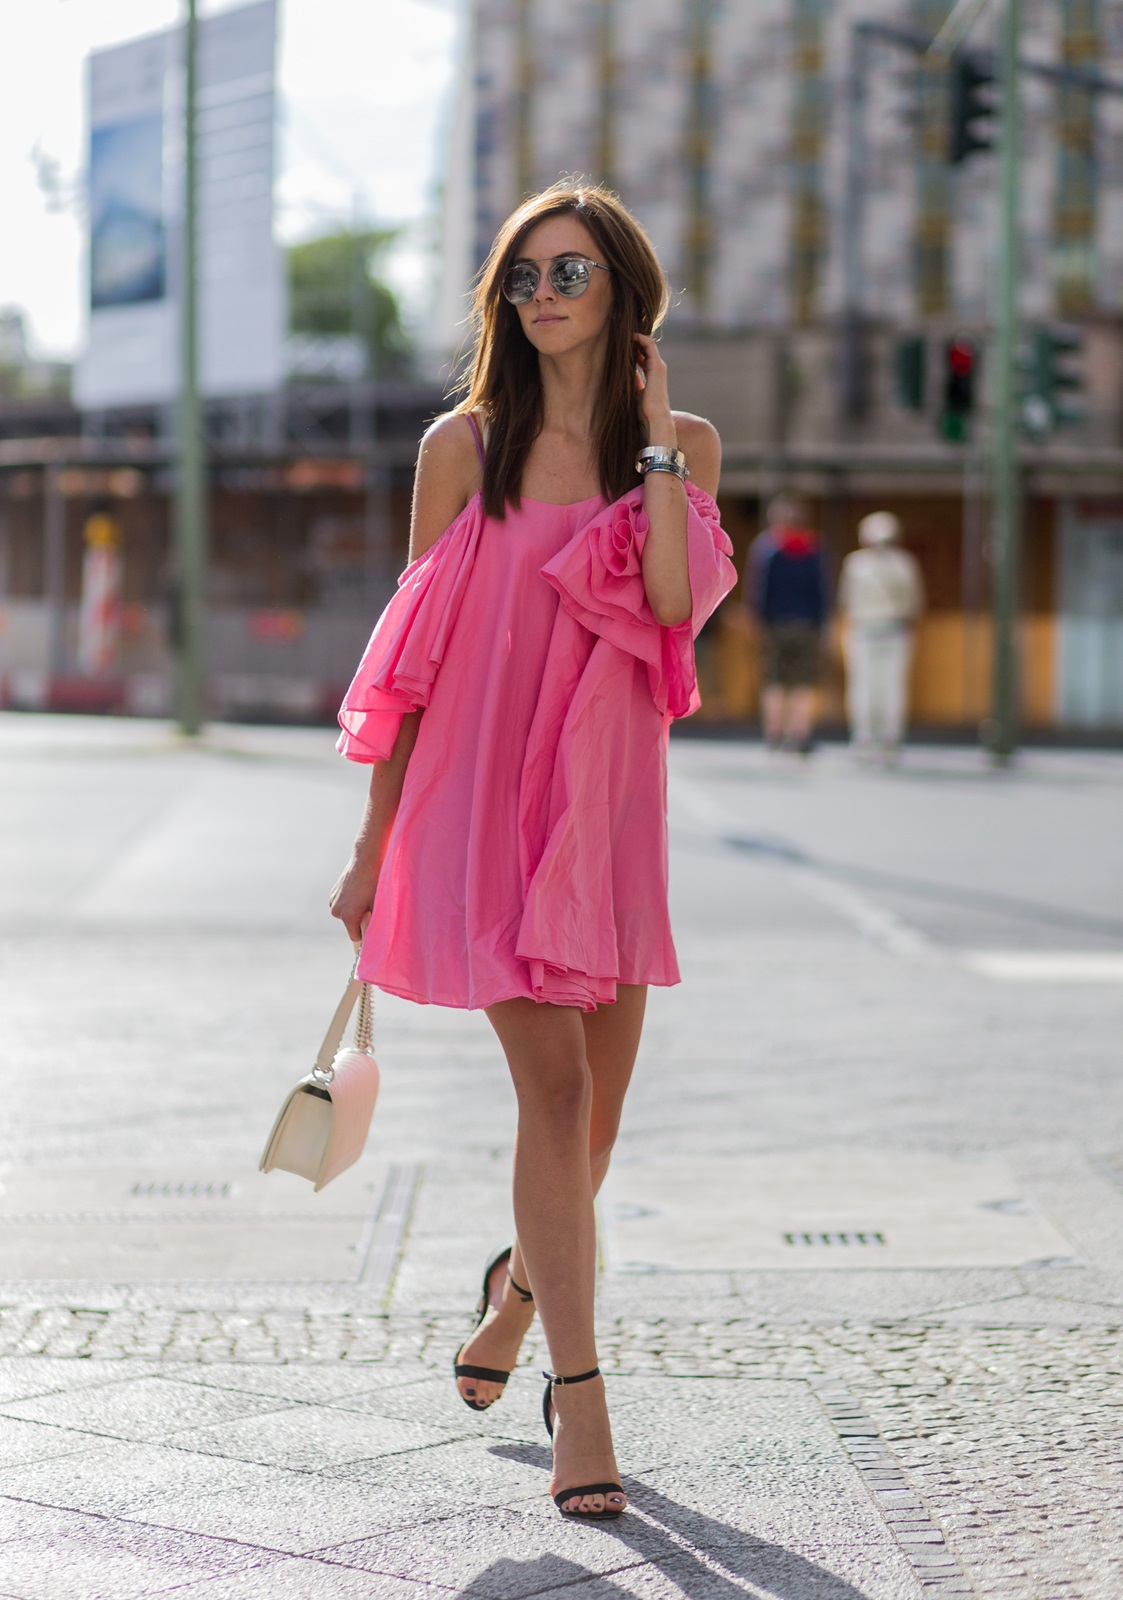 Dare to wear pink this summer! Barbora Ondrackova is absolutely dazzling in this gorgeous ruffle dress, which she has simplistically paired with black stilettos to create an uber feminine and sexy style. Dress: Storets, Heels: ASOS, Bag: Chanel.